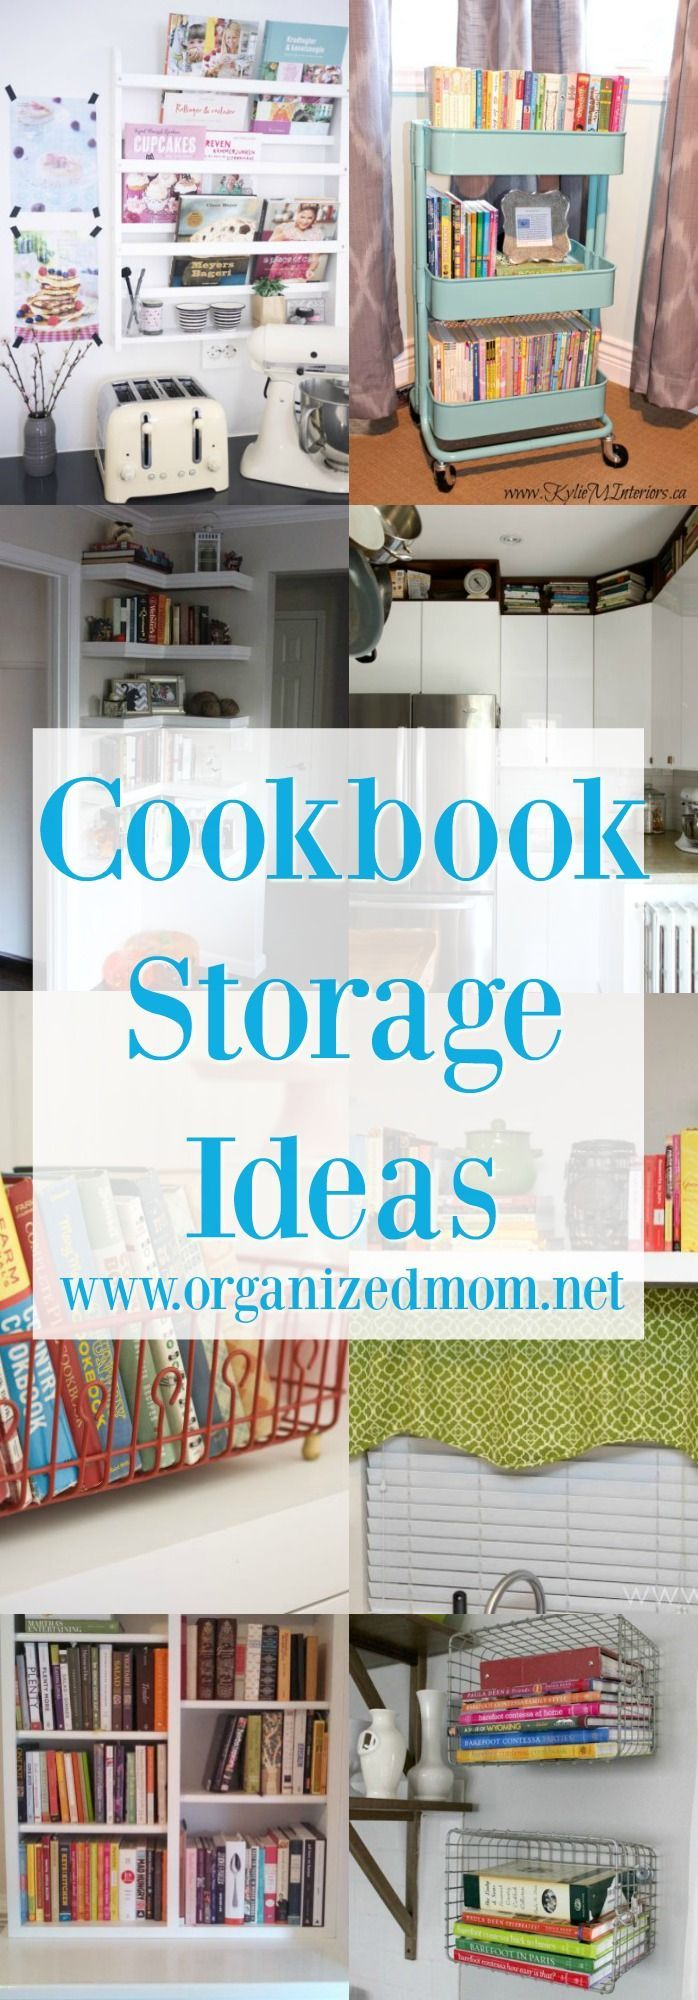 10 New Ideas for Storing Cookbooks | Homesteading | Pinterest ...